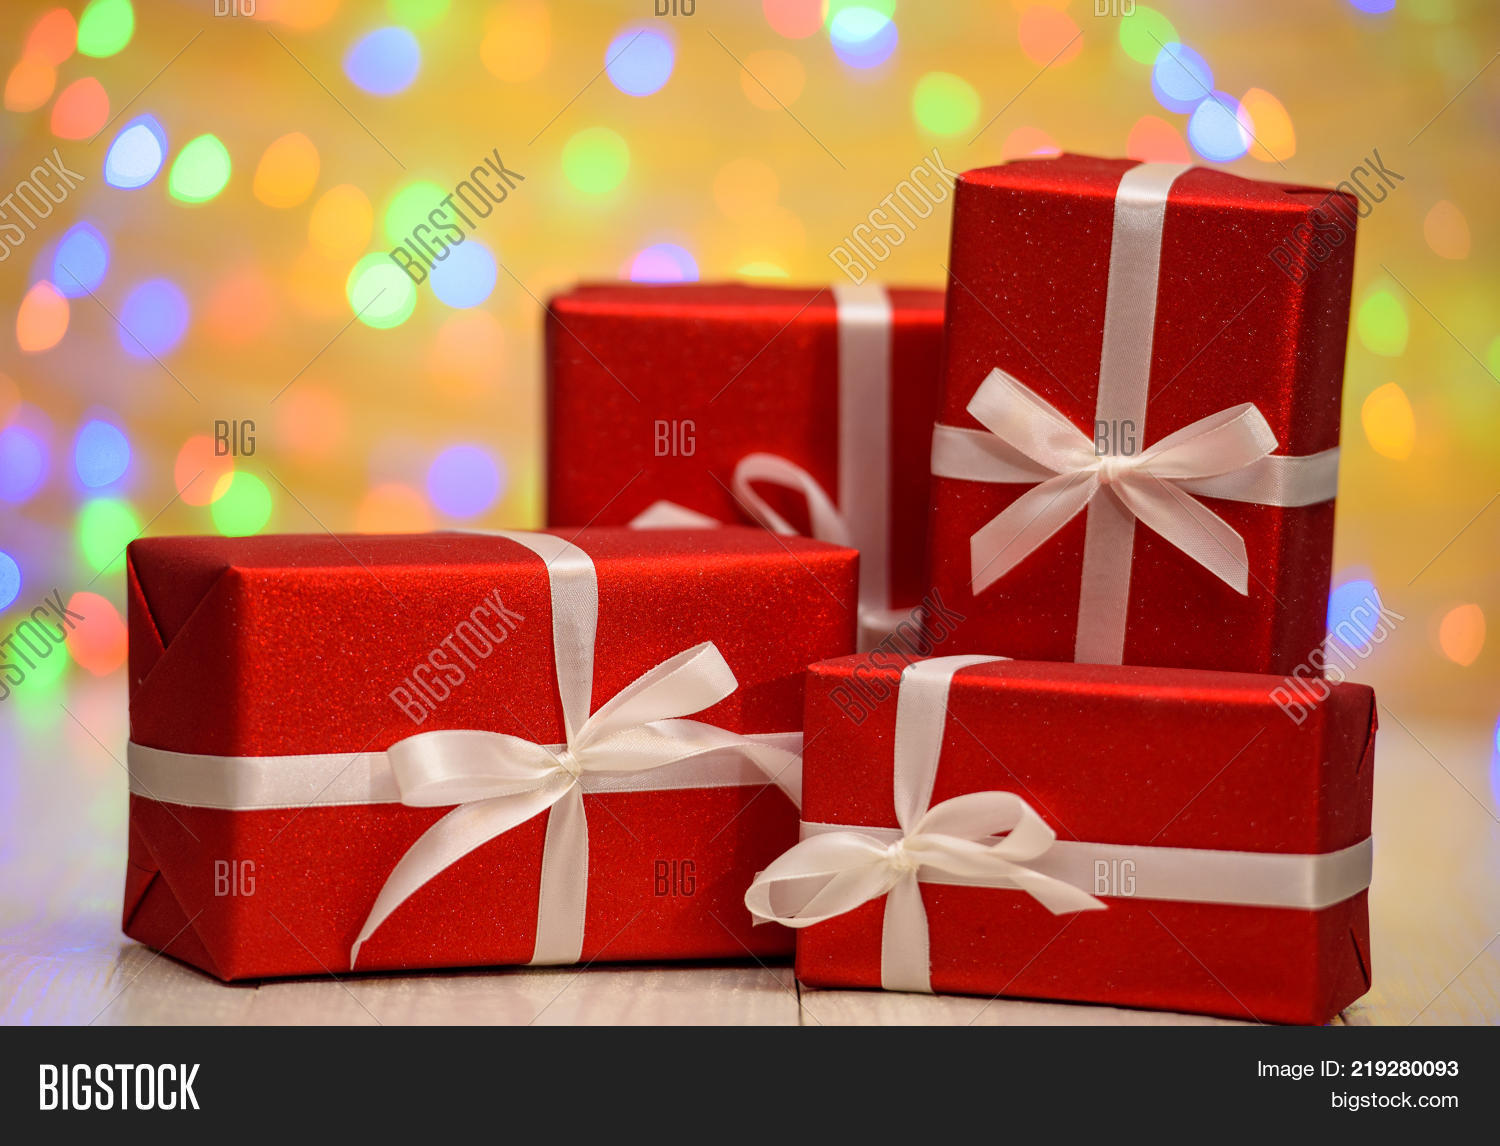 Red Gift Boxes Ribbon Image Photo Free Trial Bigstock